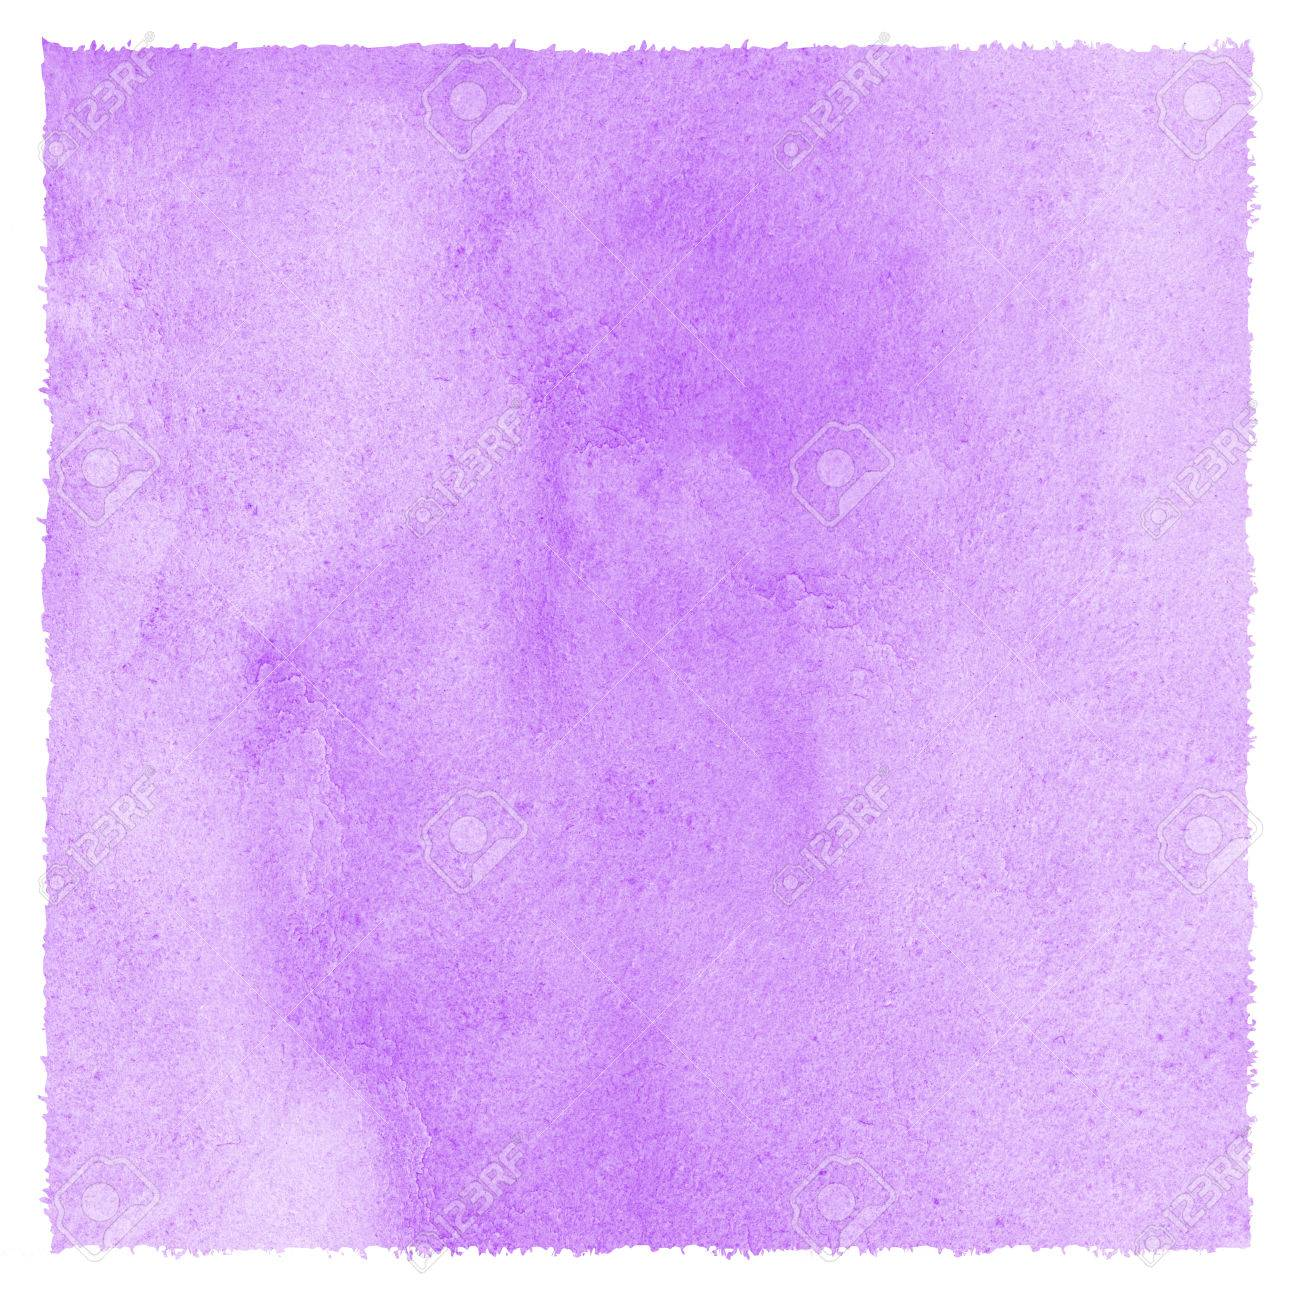 Lilac Lavender Watercolor Stains Easter Background With Rough